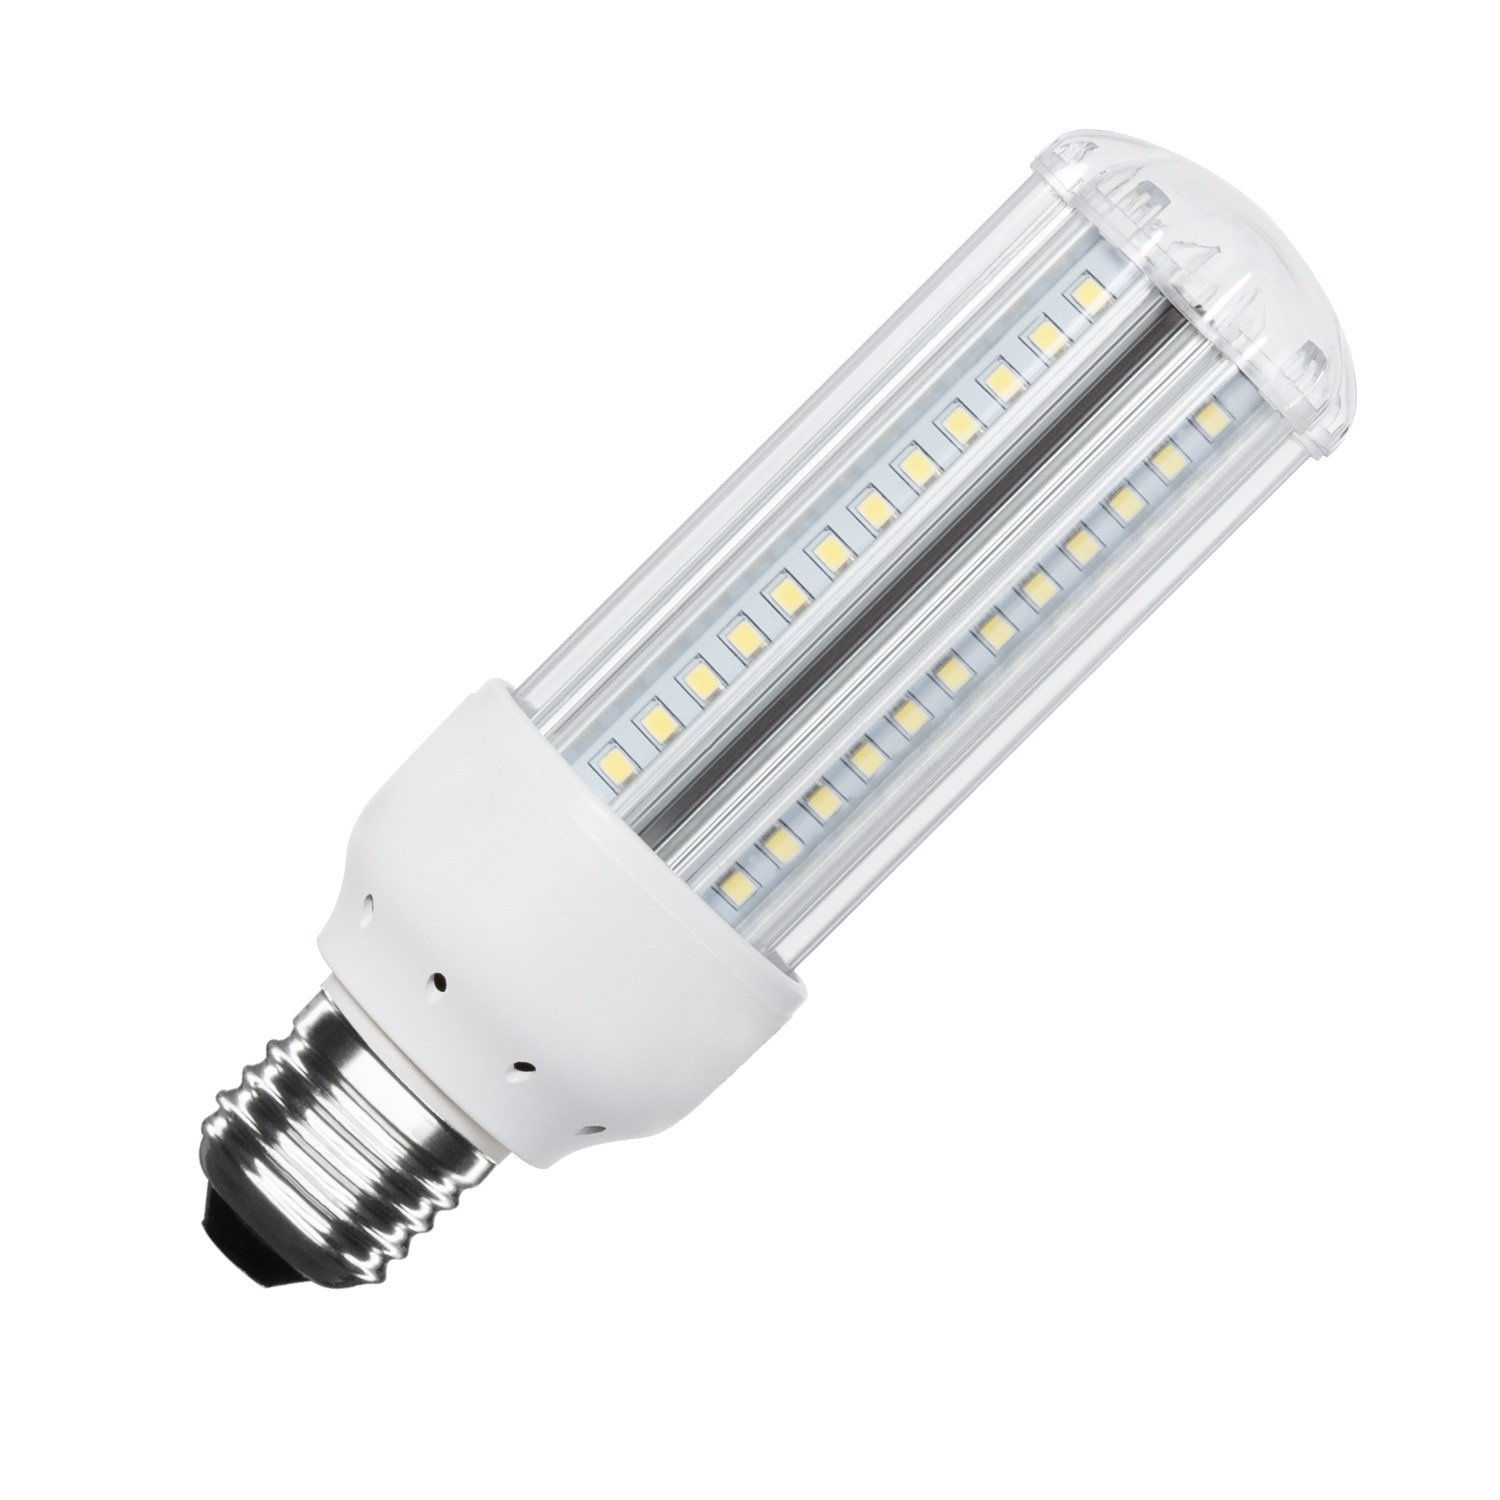 Eclairage Public Led Philips Lampe Led Éclairage Public Corn E27 10w Ledkia